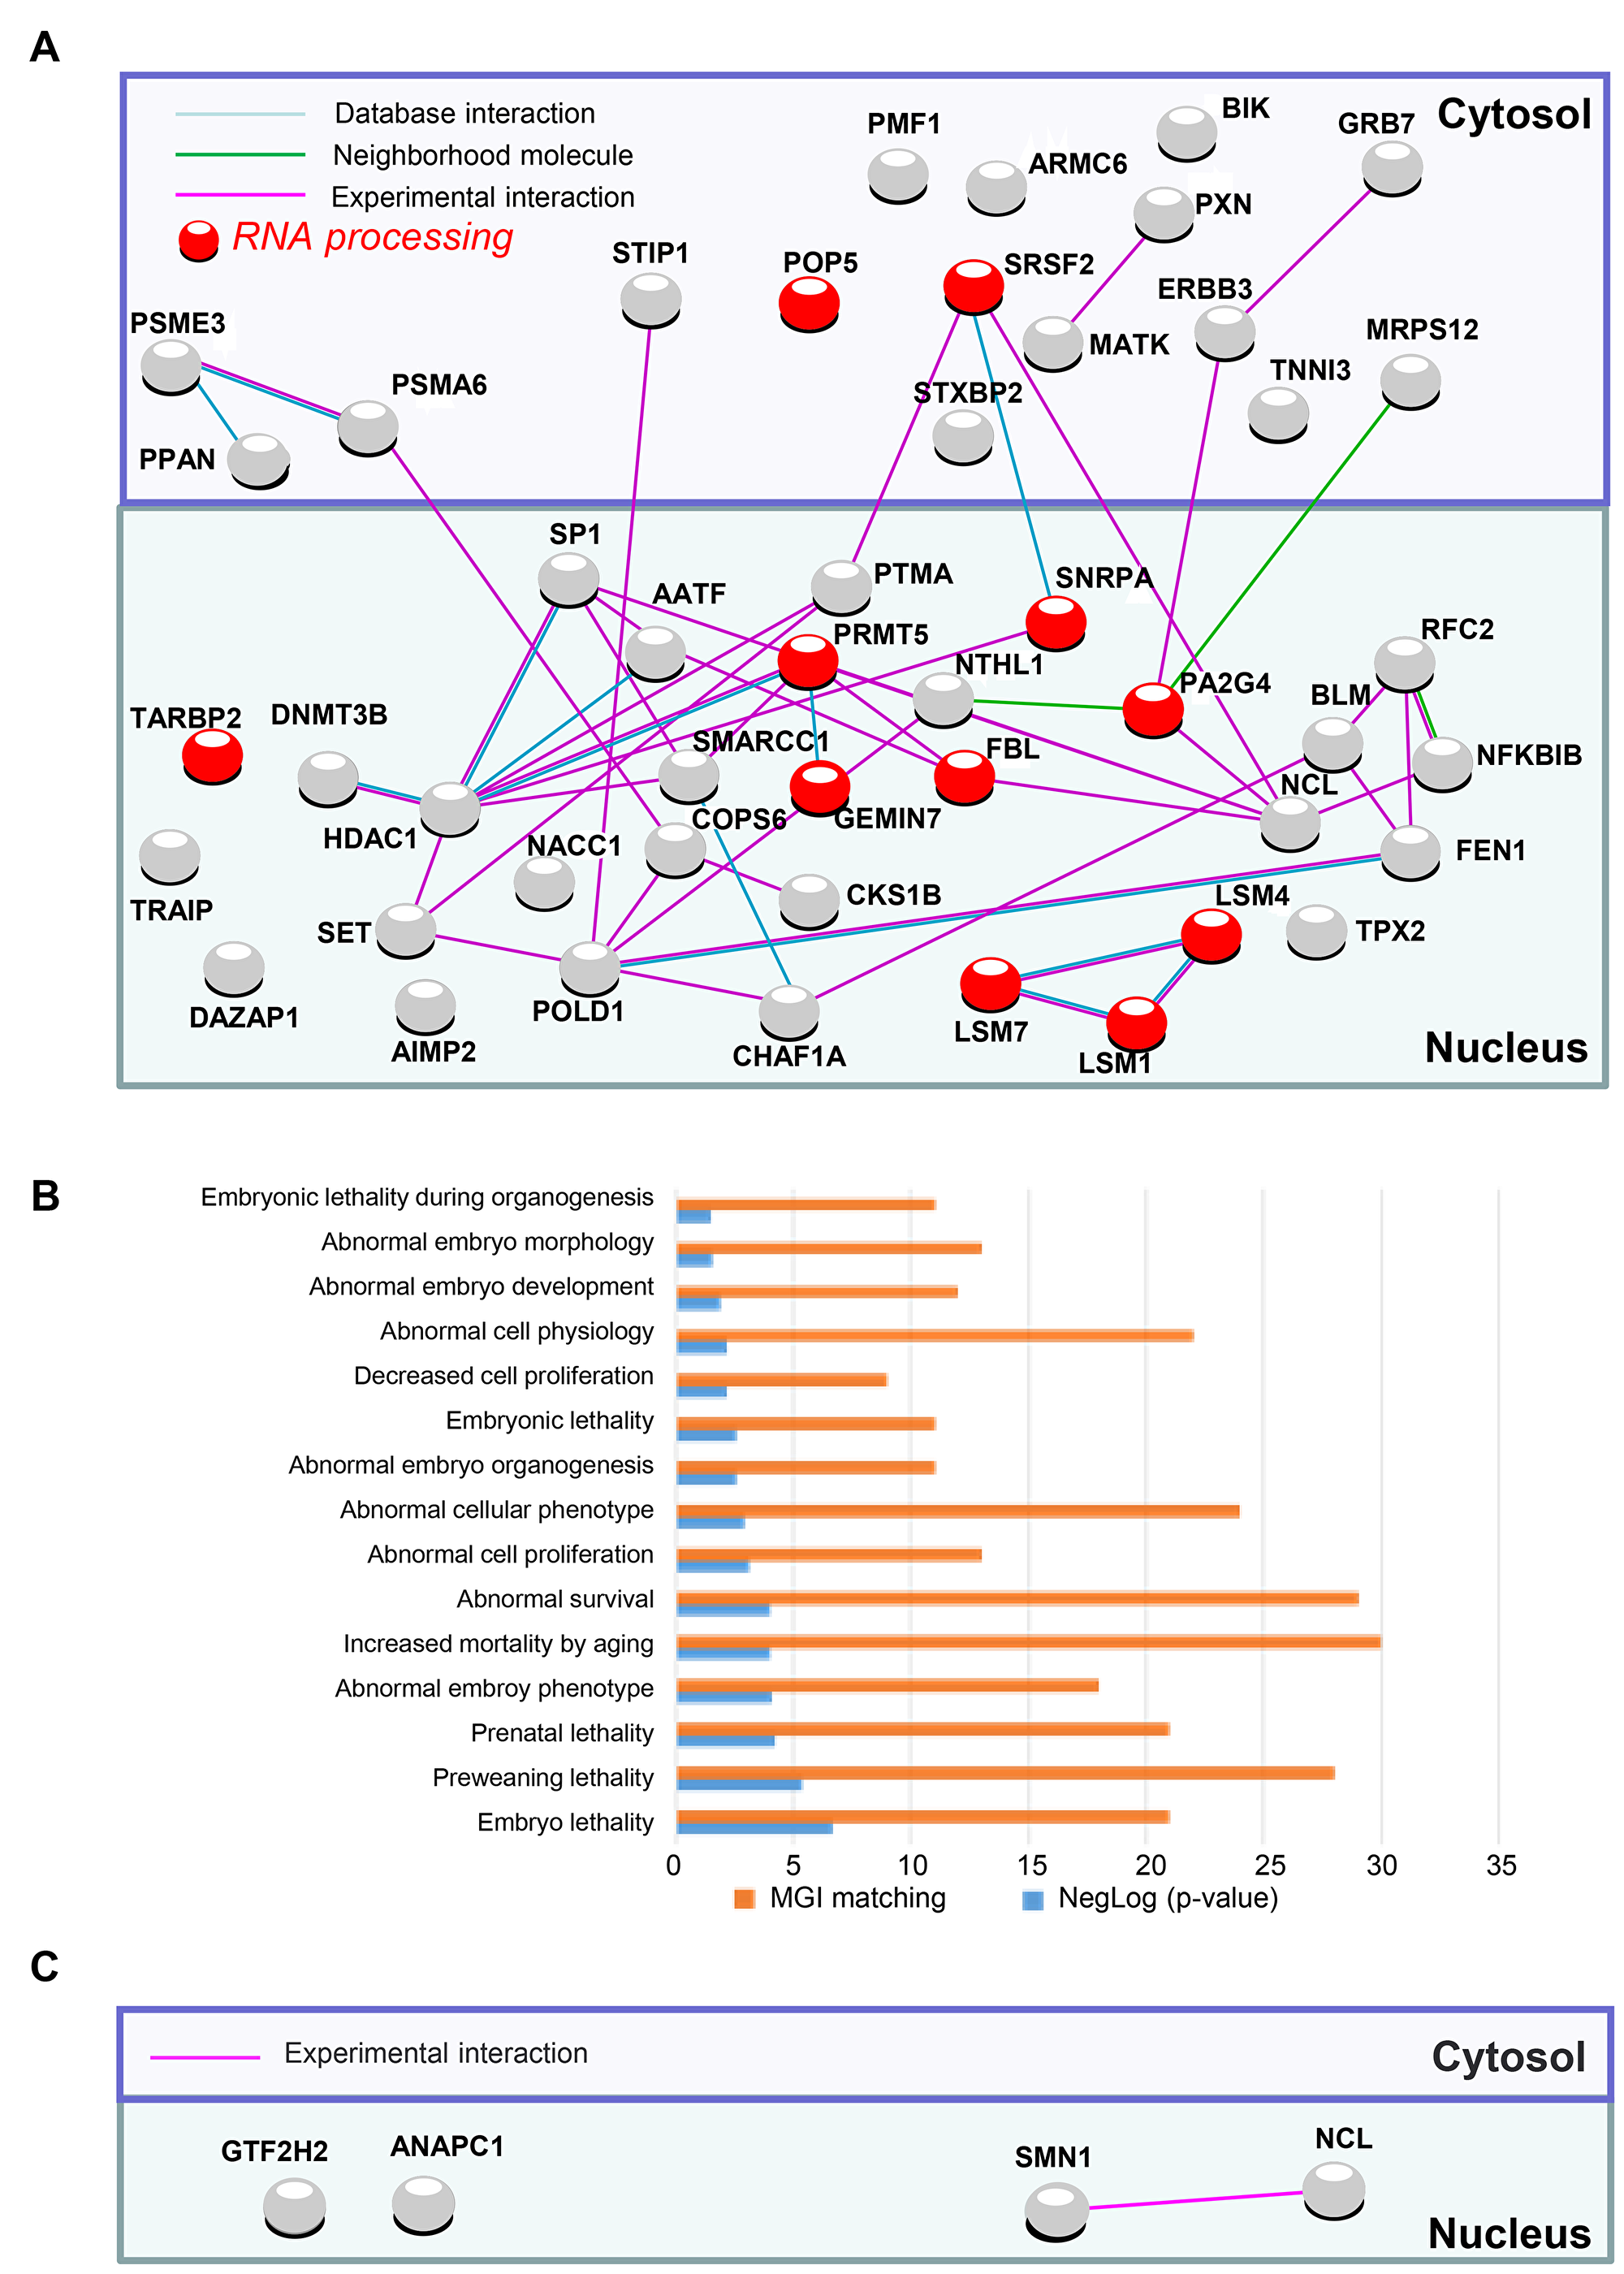 PluriNet and Mammalian phenotype analysis performed on genomic alterations of non-integrative hiPSCs.